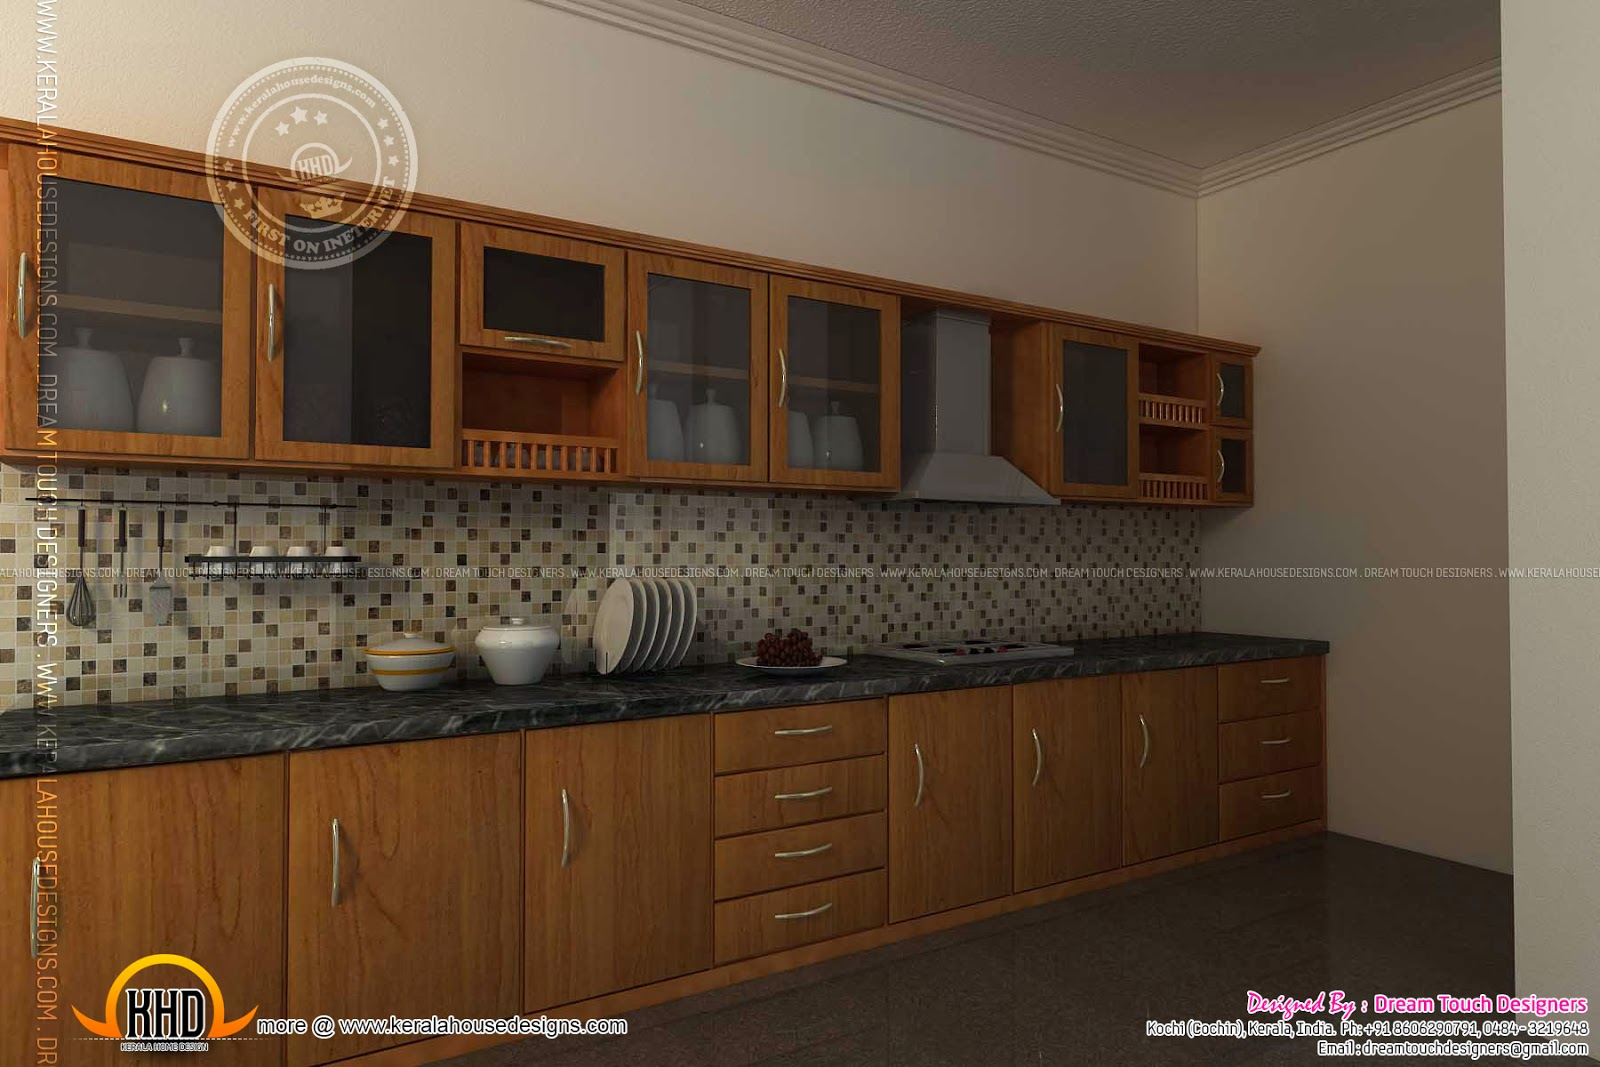 Kitchen design in kerala kerala home design and floor plans for Interior design ideas for small homes in kerala